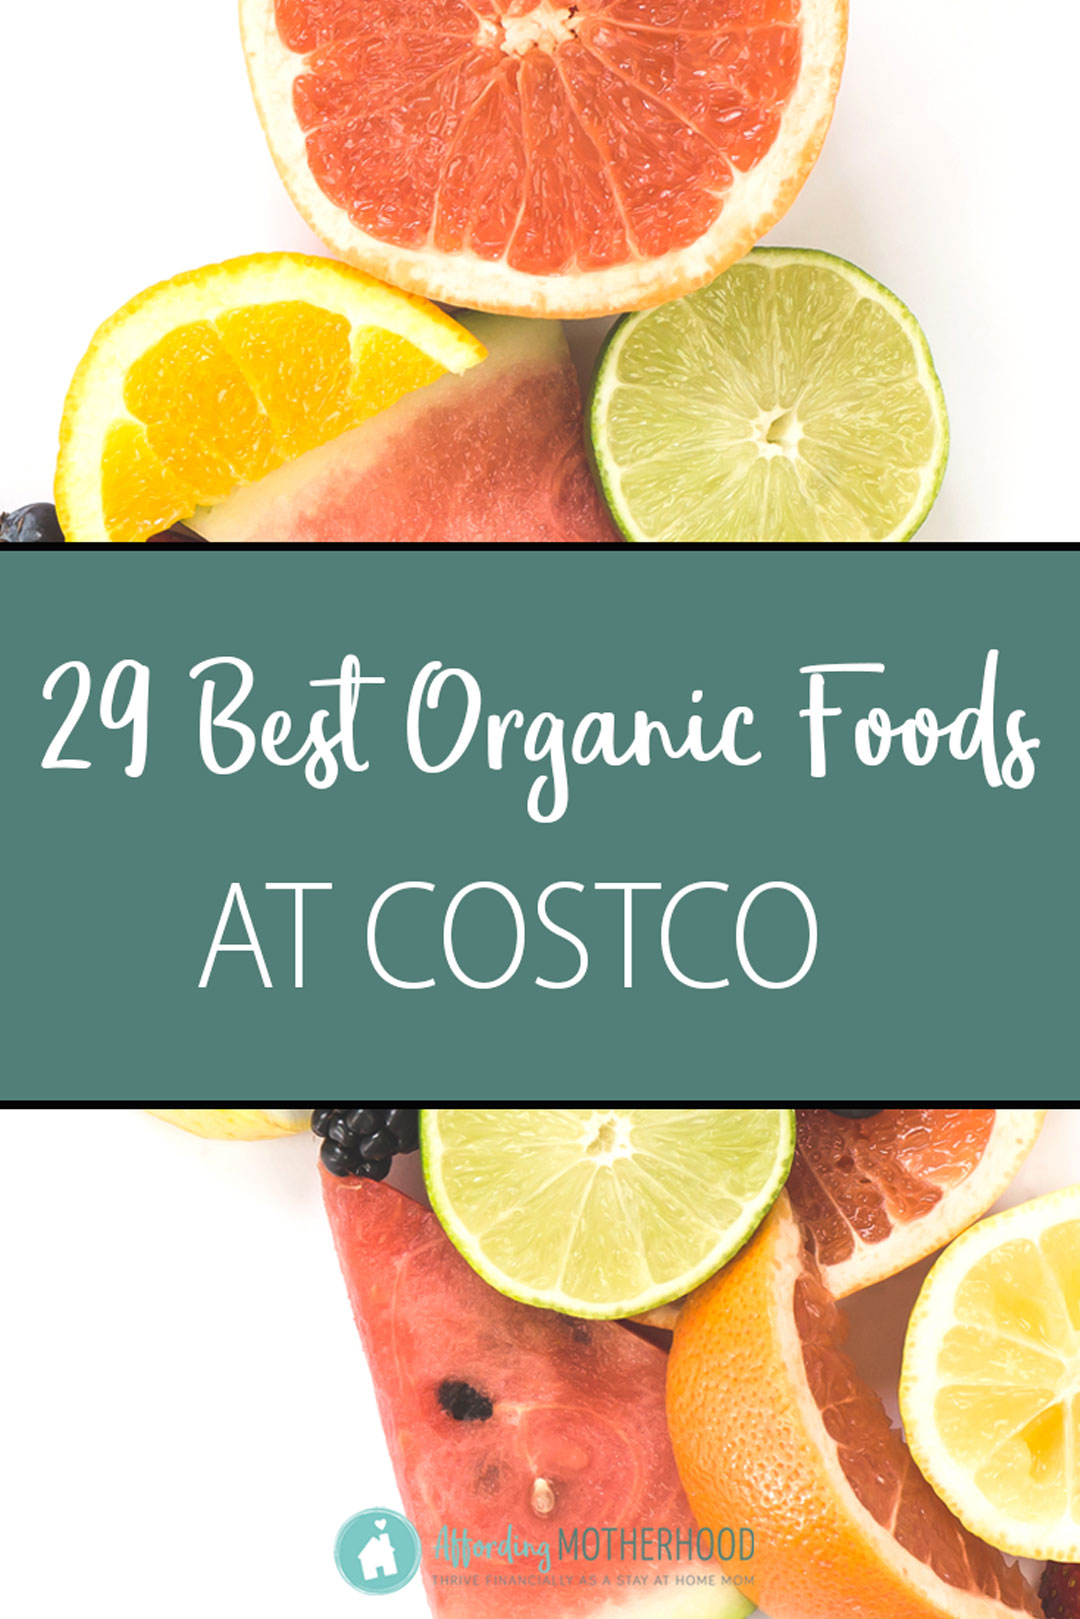 Marvelous This Costco Organic Food List Includes The Best Foods To Buy At Costco. Donu0027